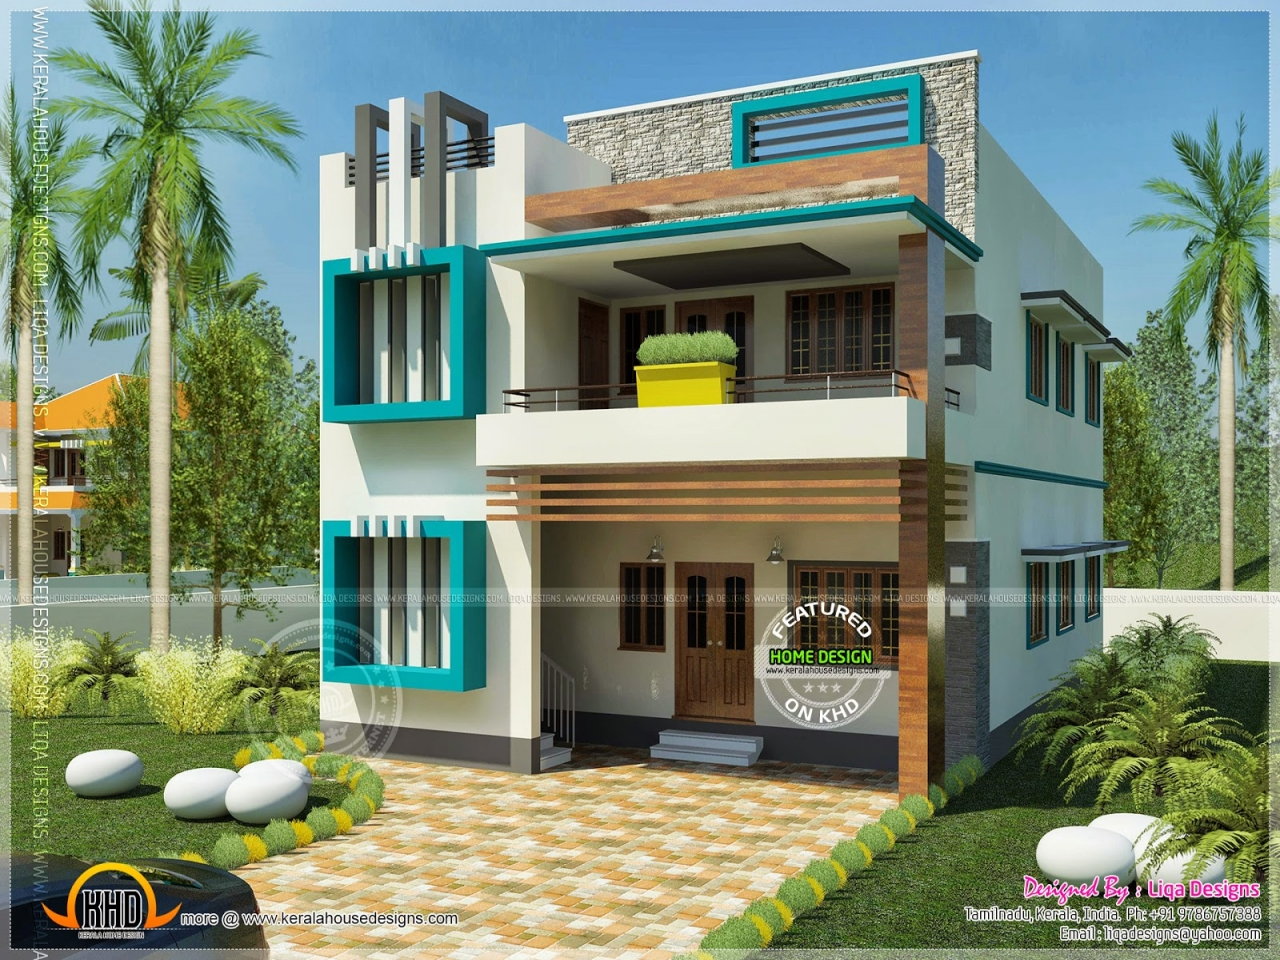 India Homes Design Indian Simple House Designs Interior Indian Border Designs